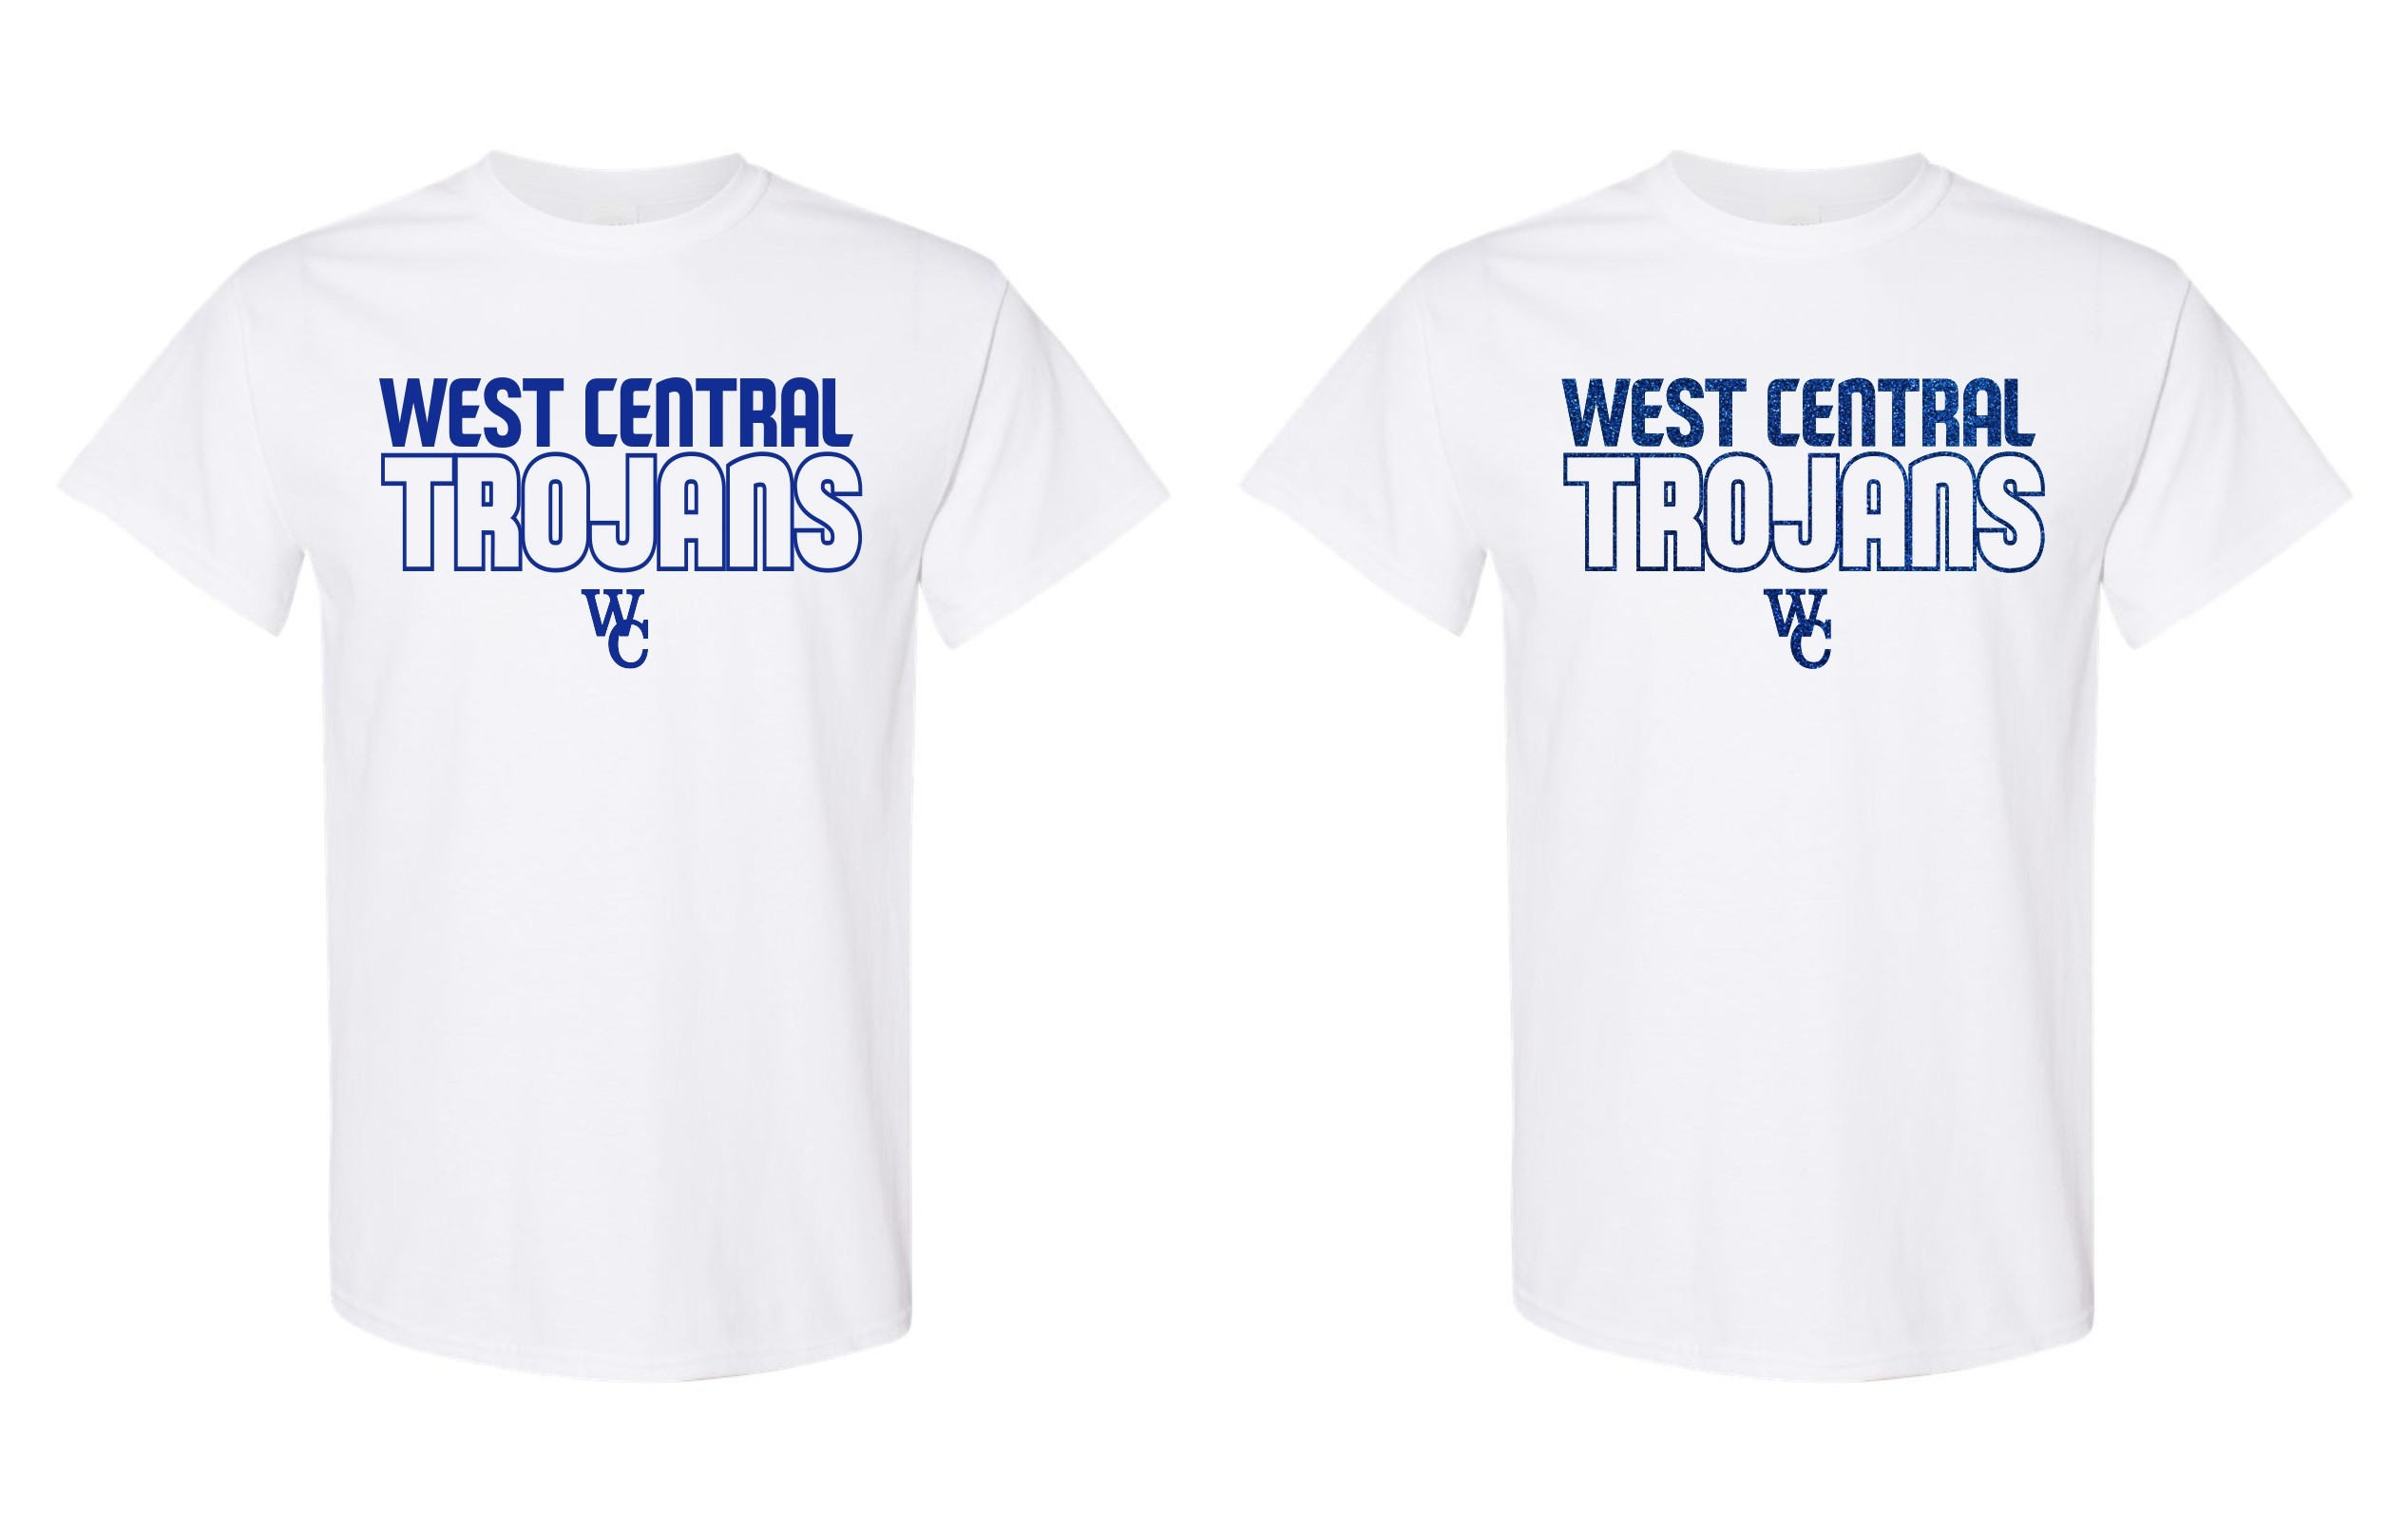 West Central Trojans Tee